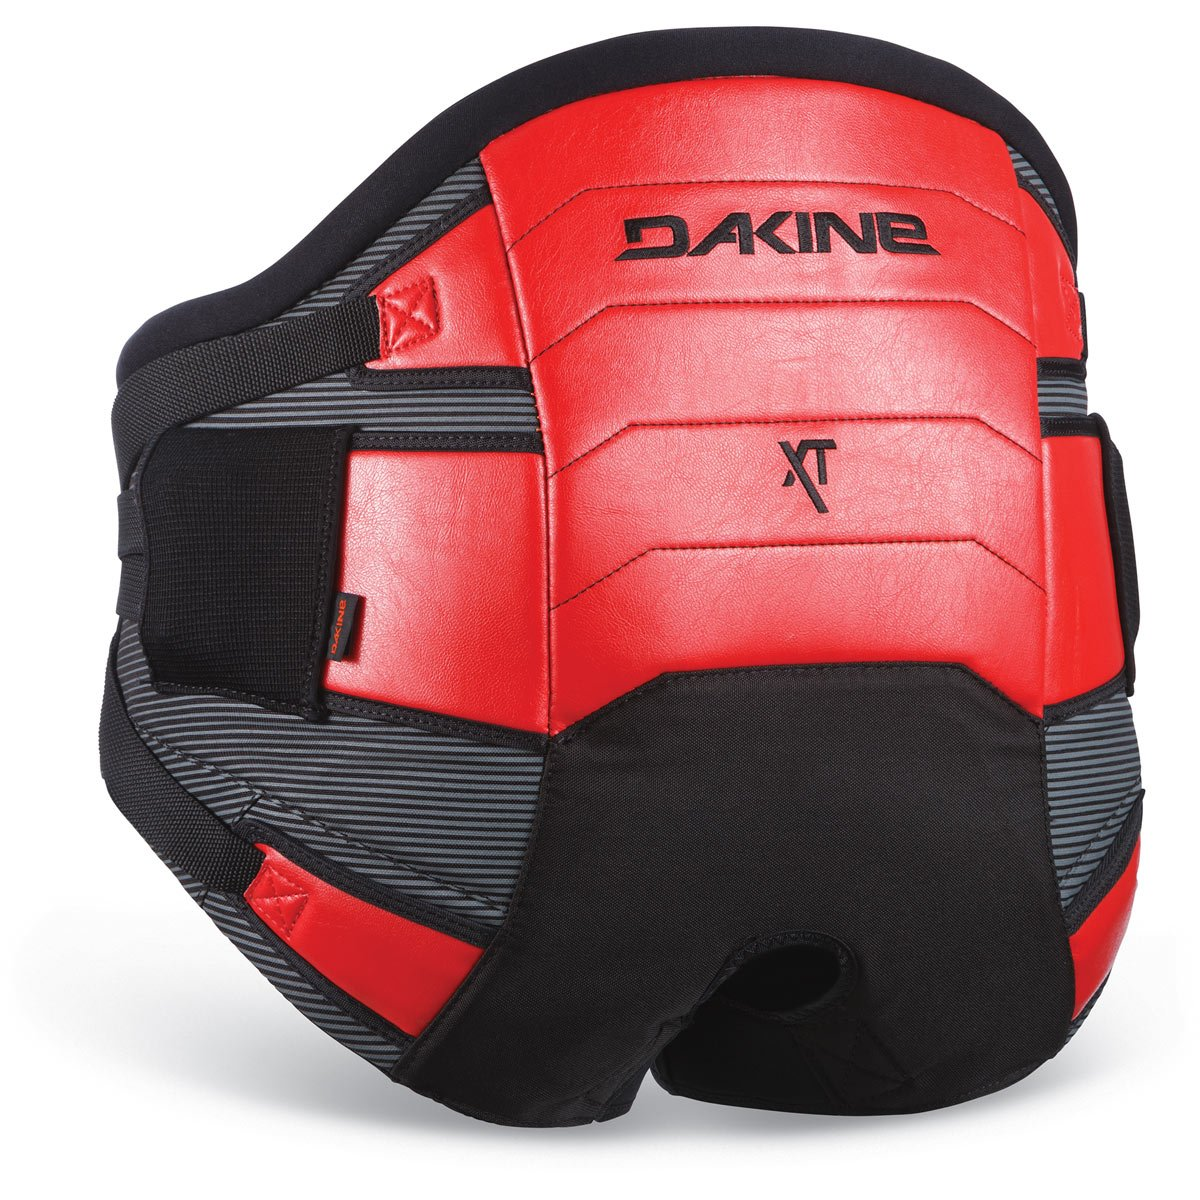 Dakine Men's XT Seat Windsurf Harness, Red, XS